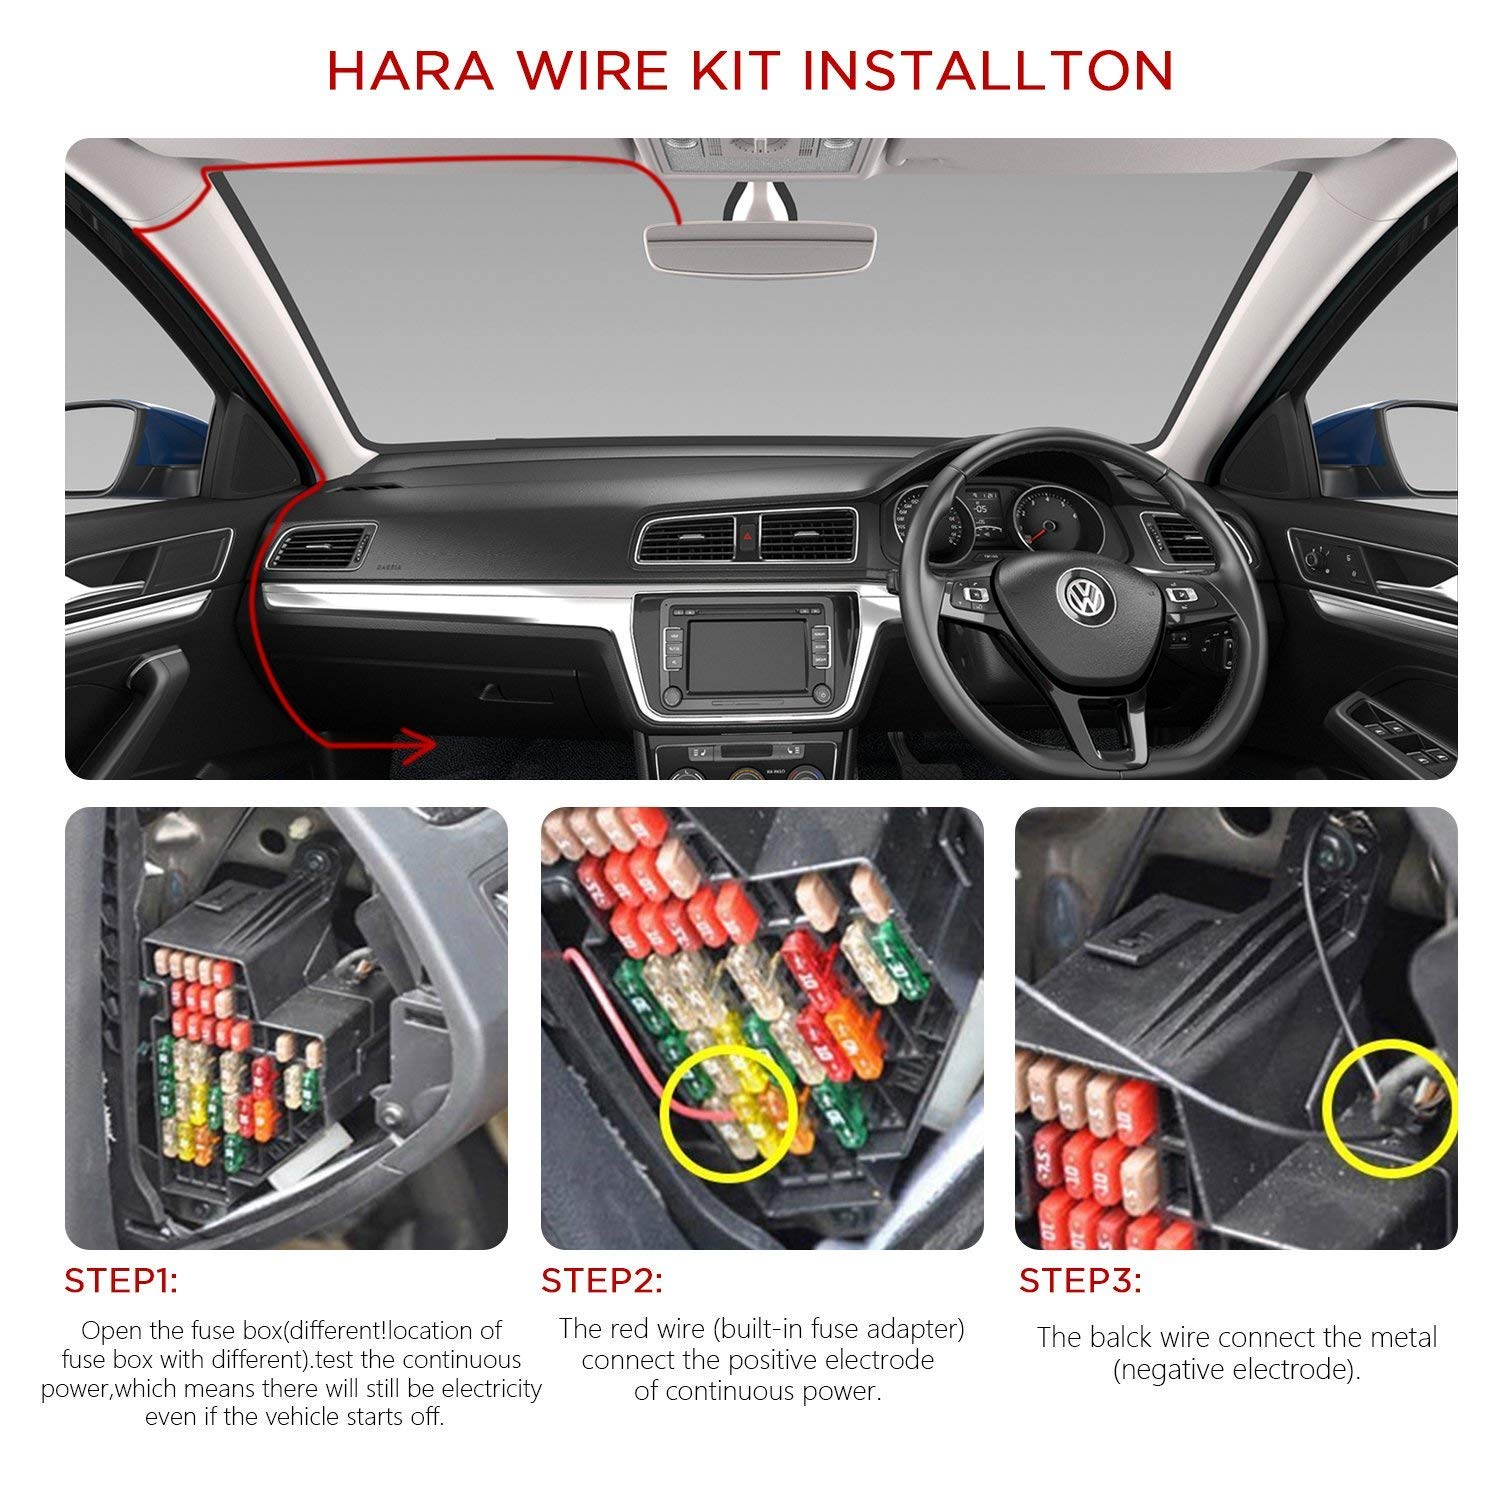 Mini Usb Hardwire Kit For Dash Cam Hard Wire Car Charger Fuse Box Adapter Cable 12v 24v To 5v Cameras Gps Dvr Power 35m 11ft